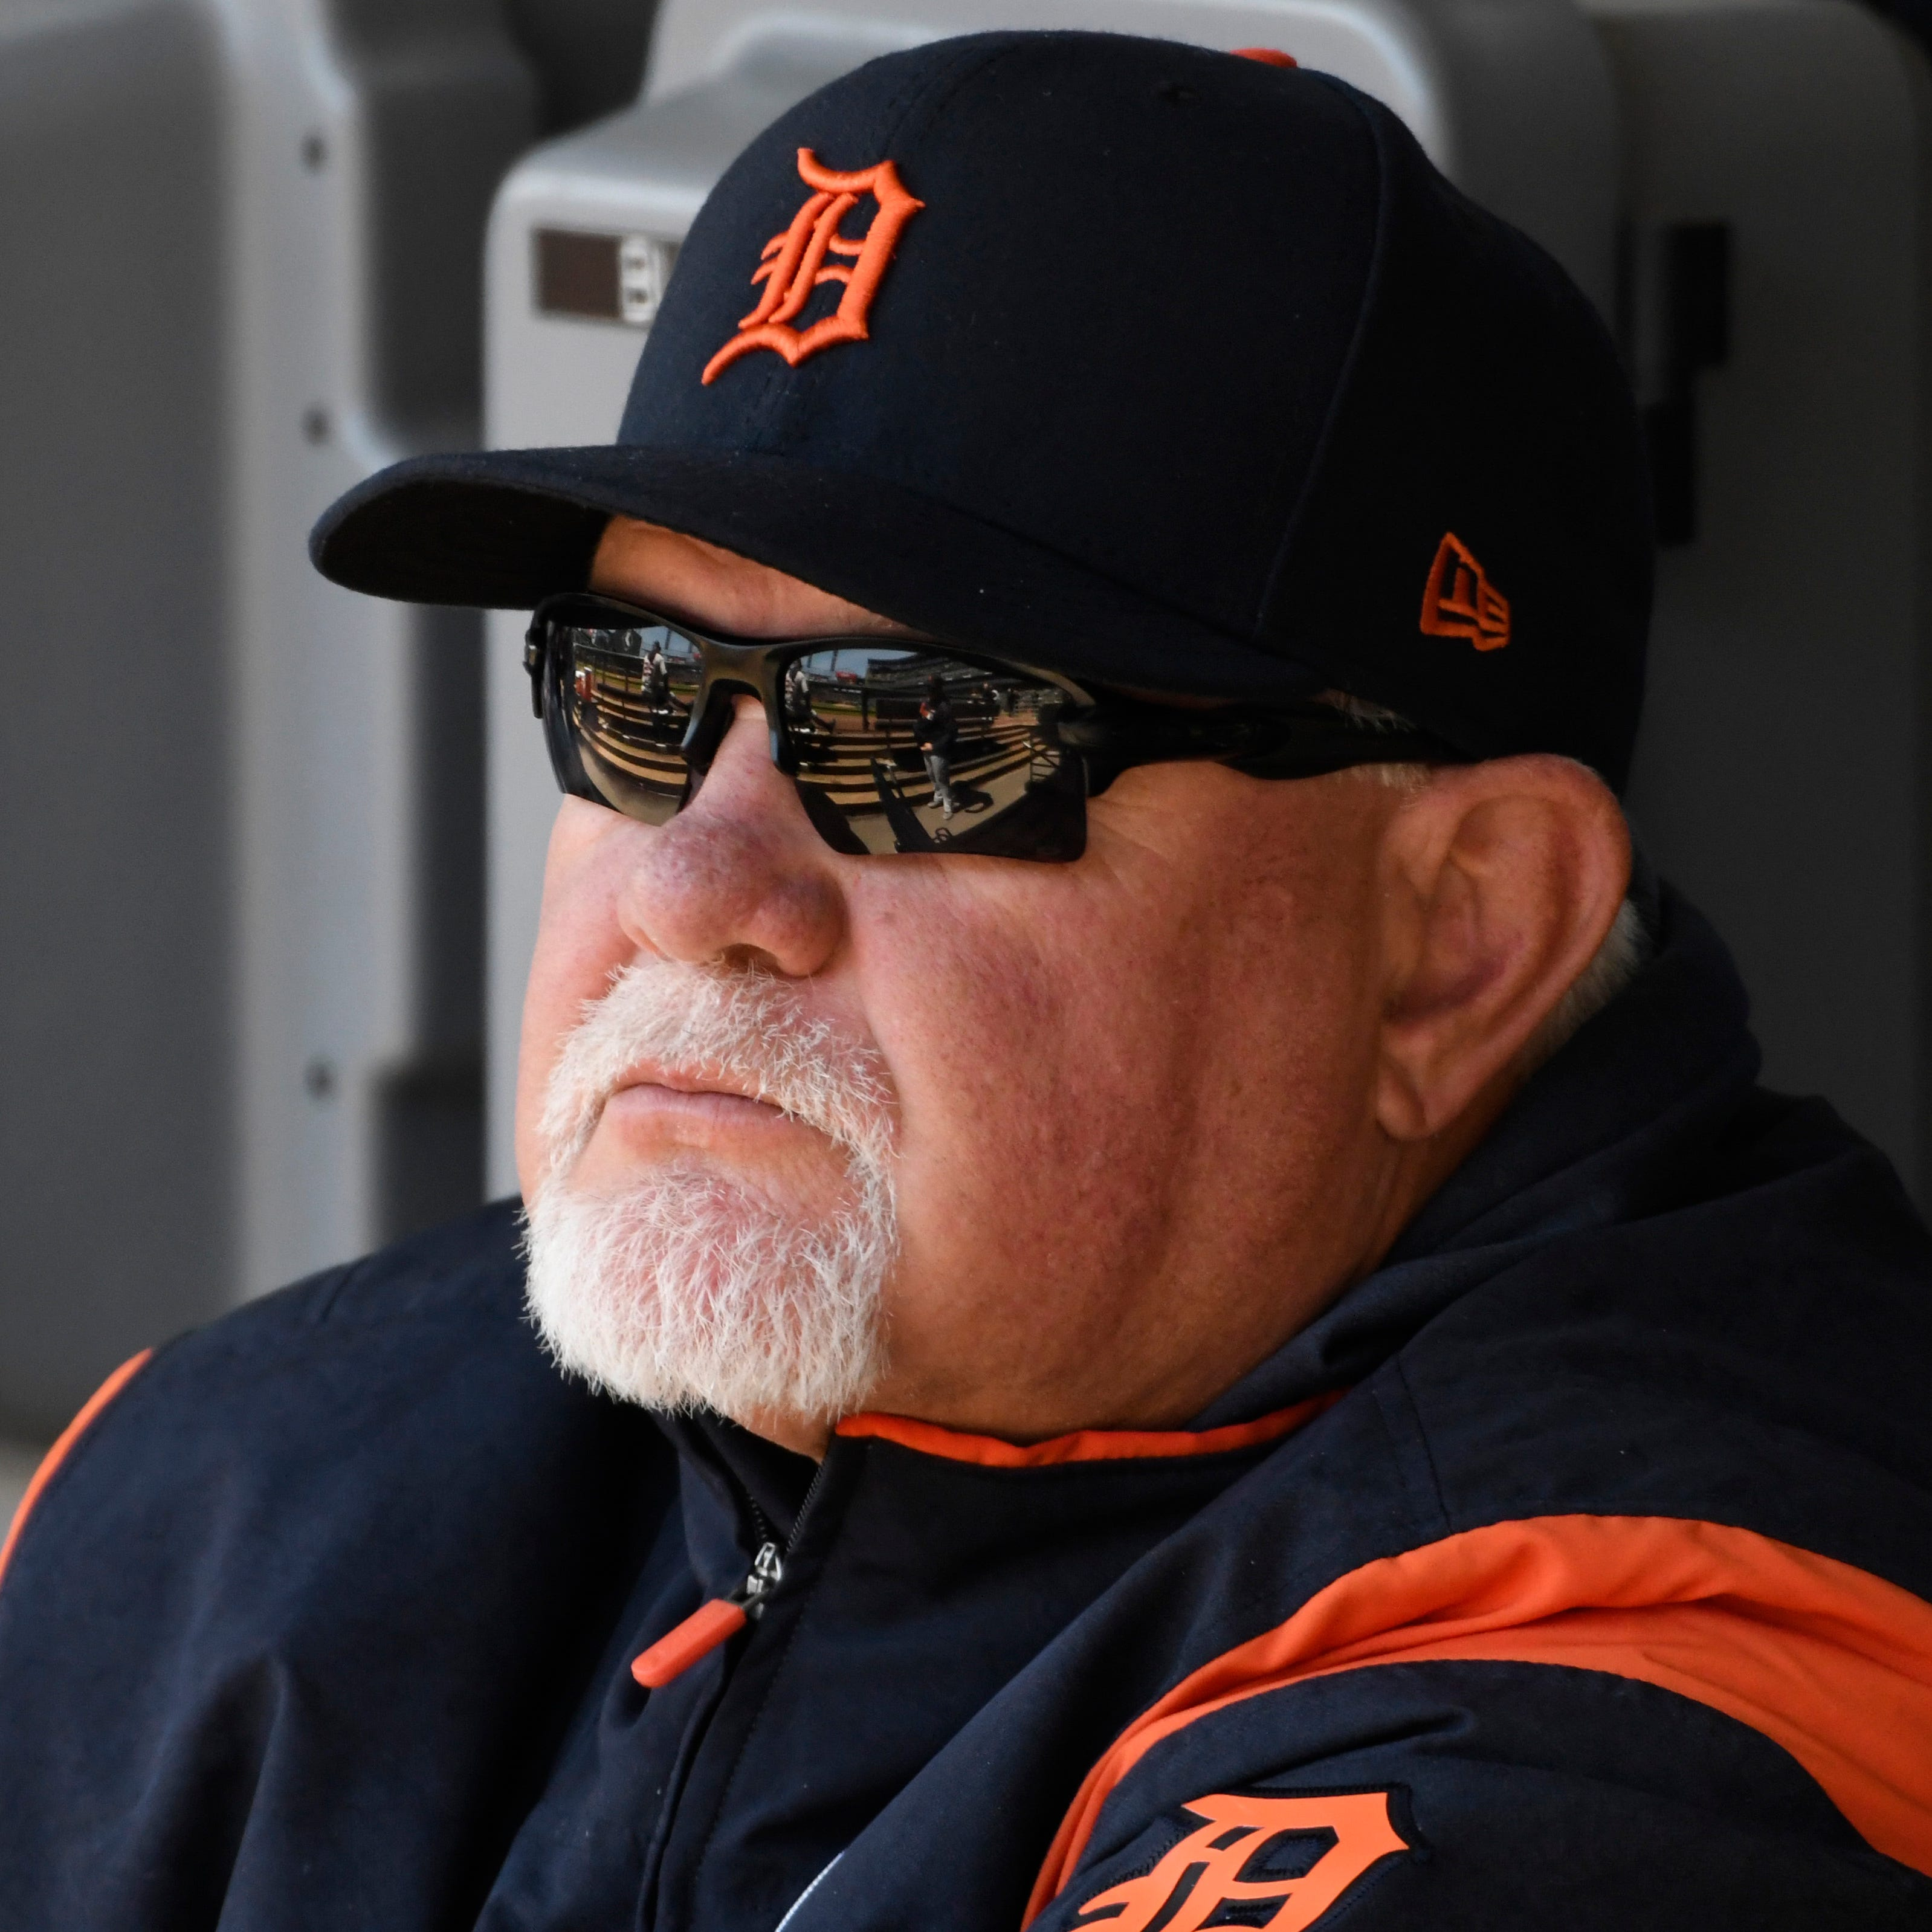 Detroit Tigers' record-tying ineptitude at the plate 'not acceptable'